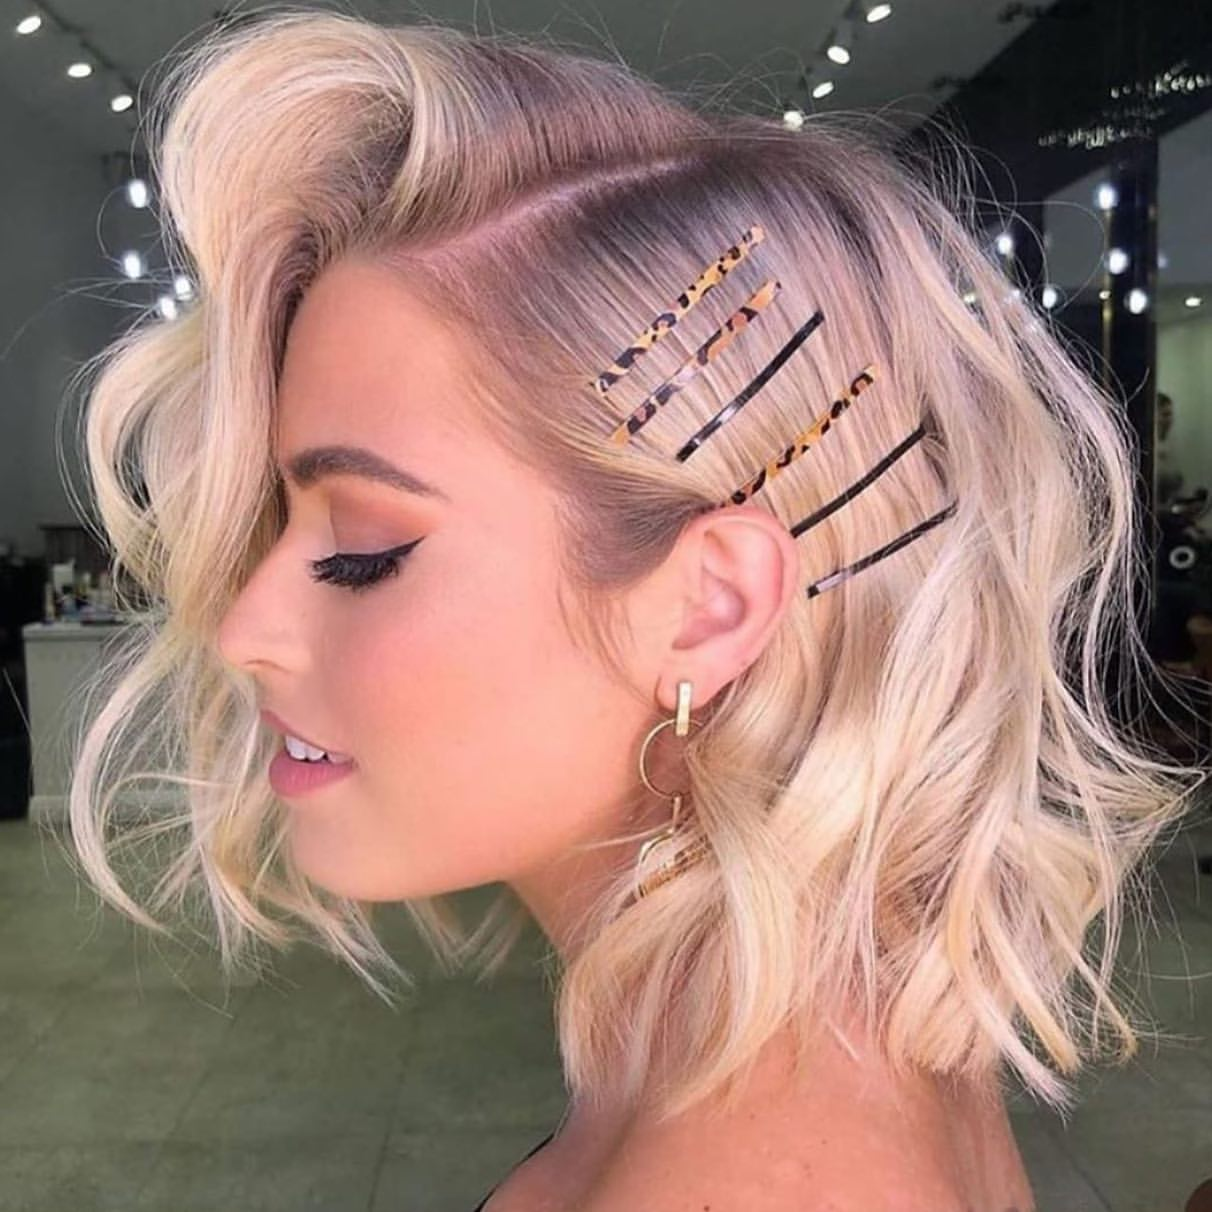 Hairstyles with trendy brooches